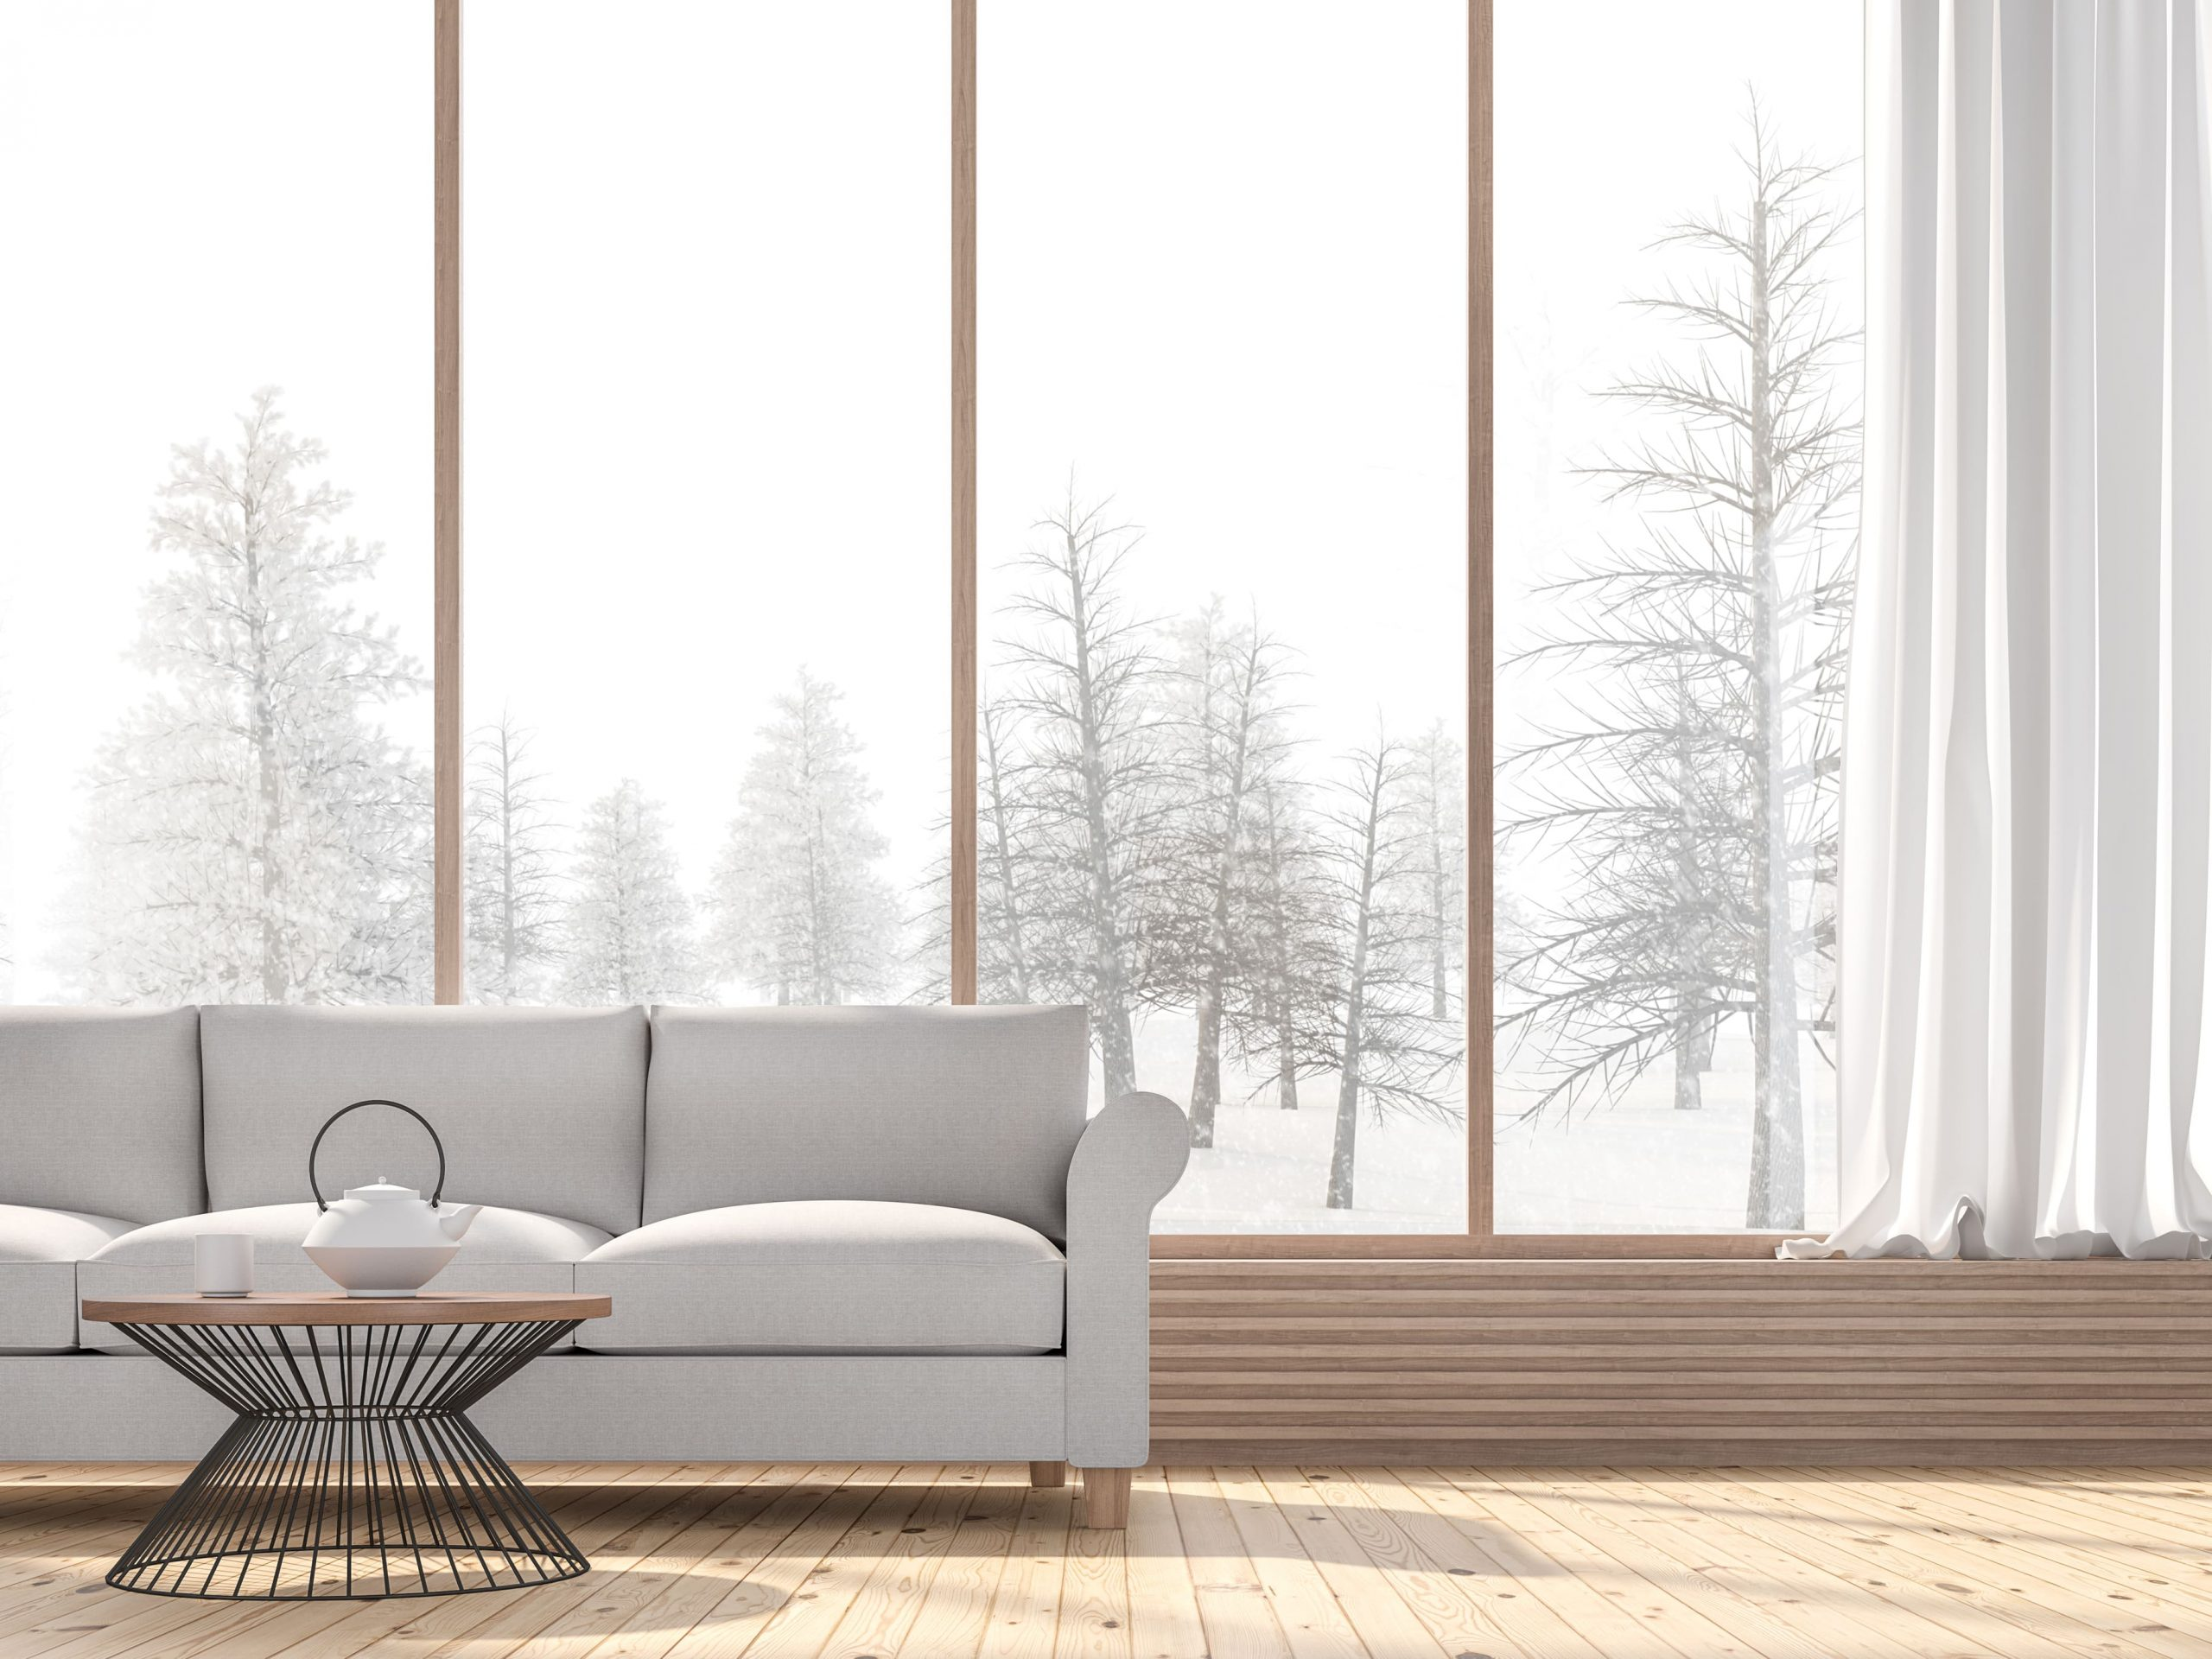 living room with hardwood flooring and window with snow falling outside